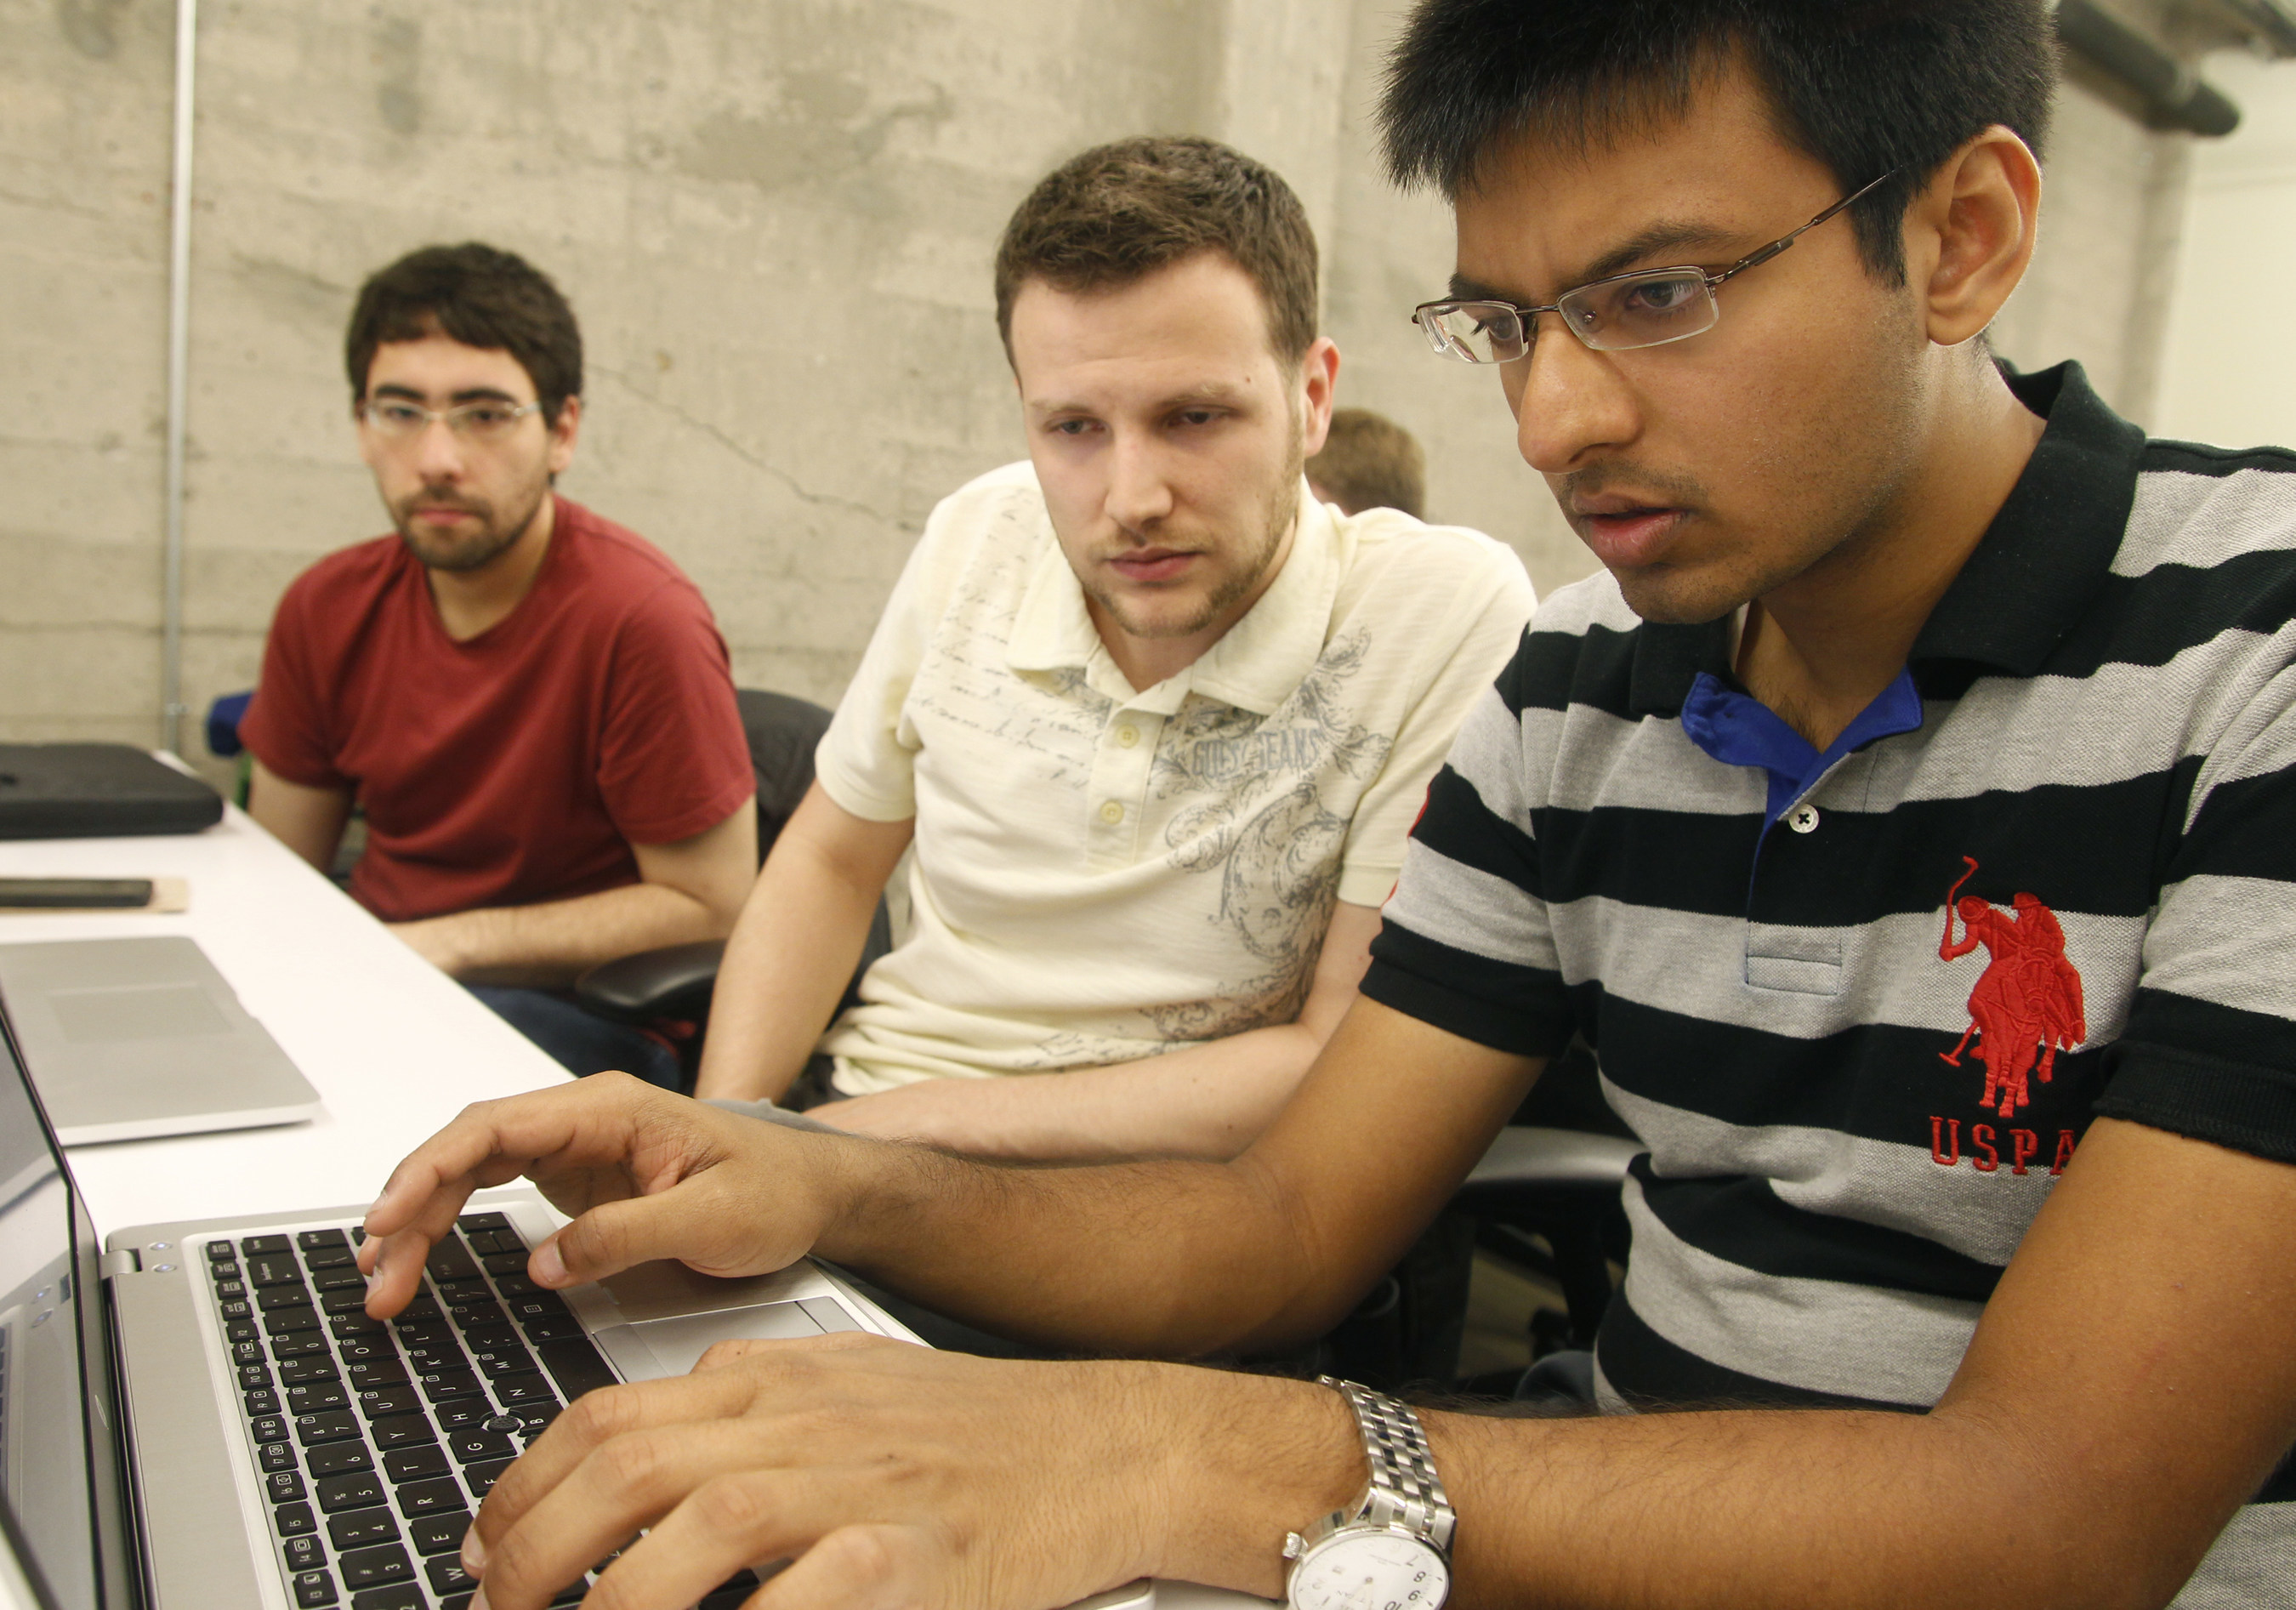 Shiva Gopalan, an engineering student at Texas A&M University, confers with IBM developers Henrique Copelli Zambon and Luiz Aoqui, during an IBM hosted Spark Hackathon at Galvanize, a tech hub in San Francisco.